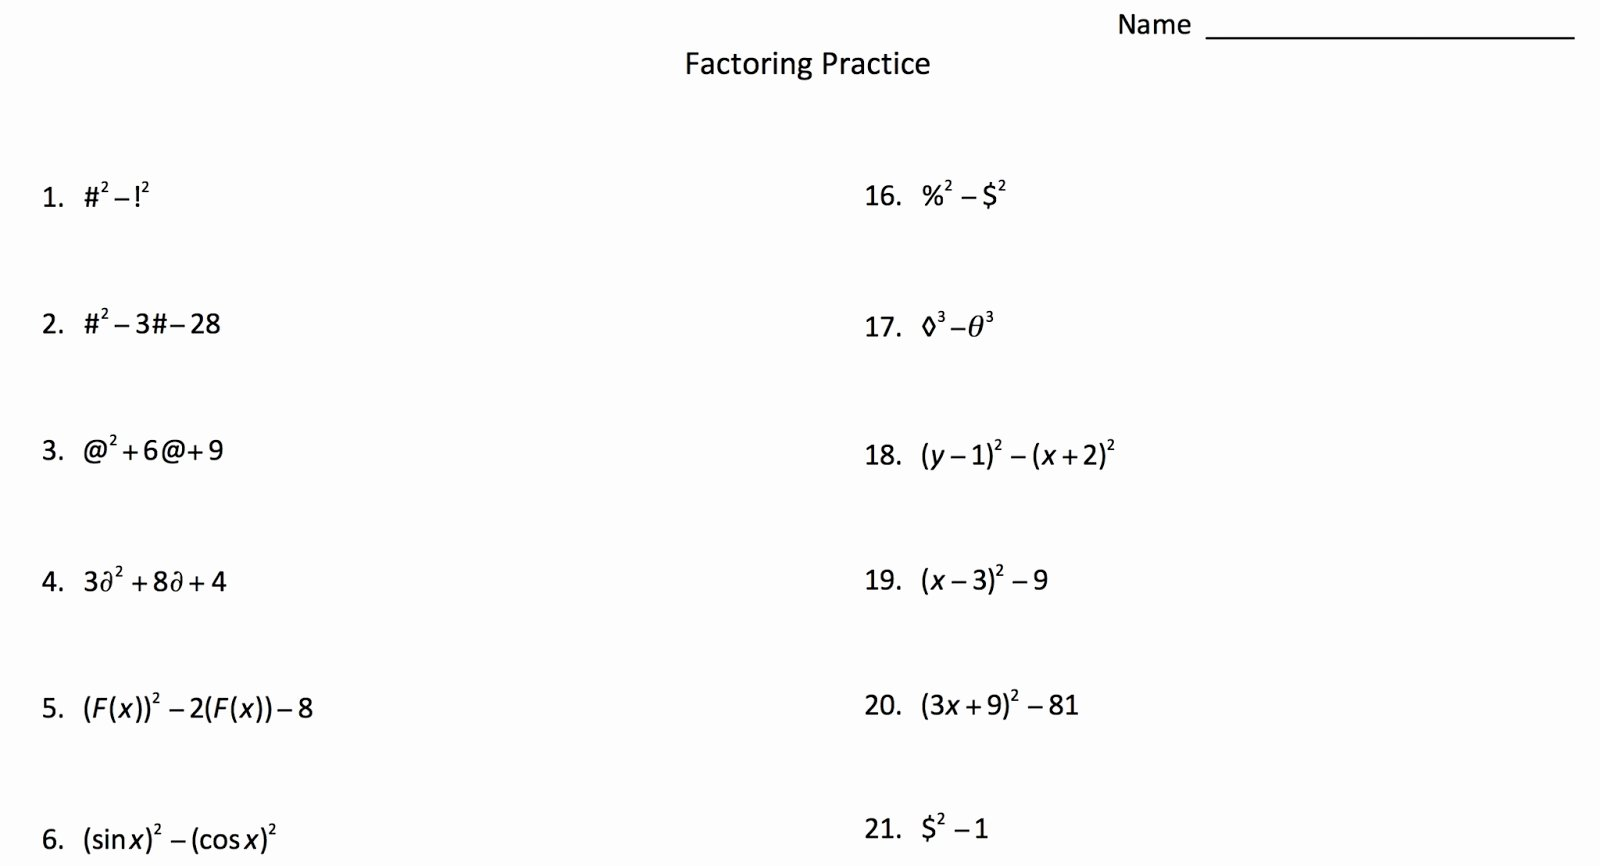 Factoring Worksheet Algebra 1 Luxury Factoring with Symbols